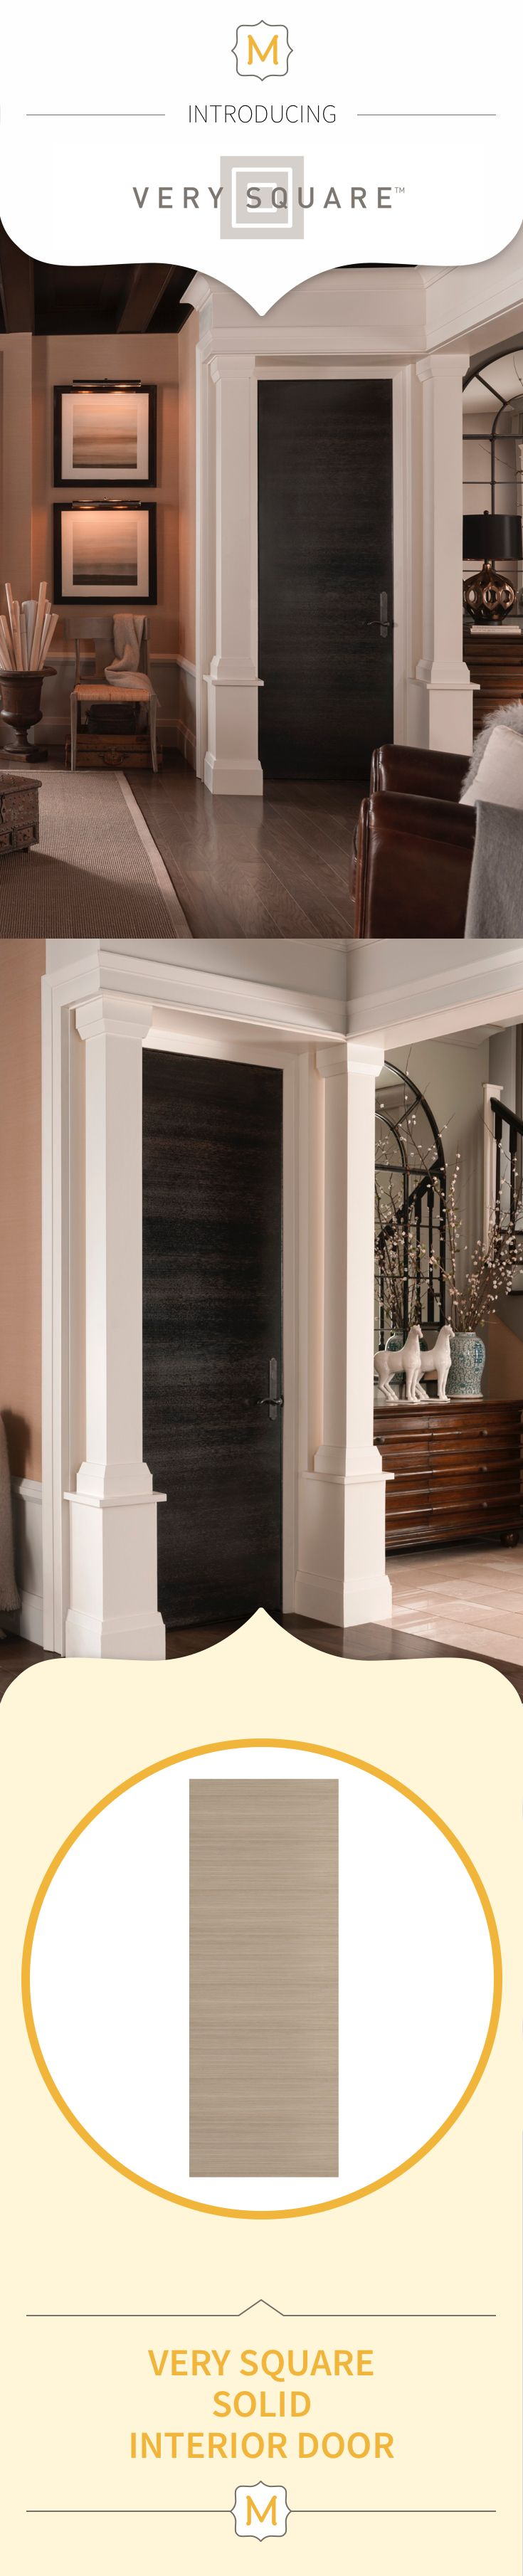 Even doors can bring an element of design to the room and these Metrie Very Square Collection interior doors make the whole room feel complete.